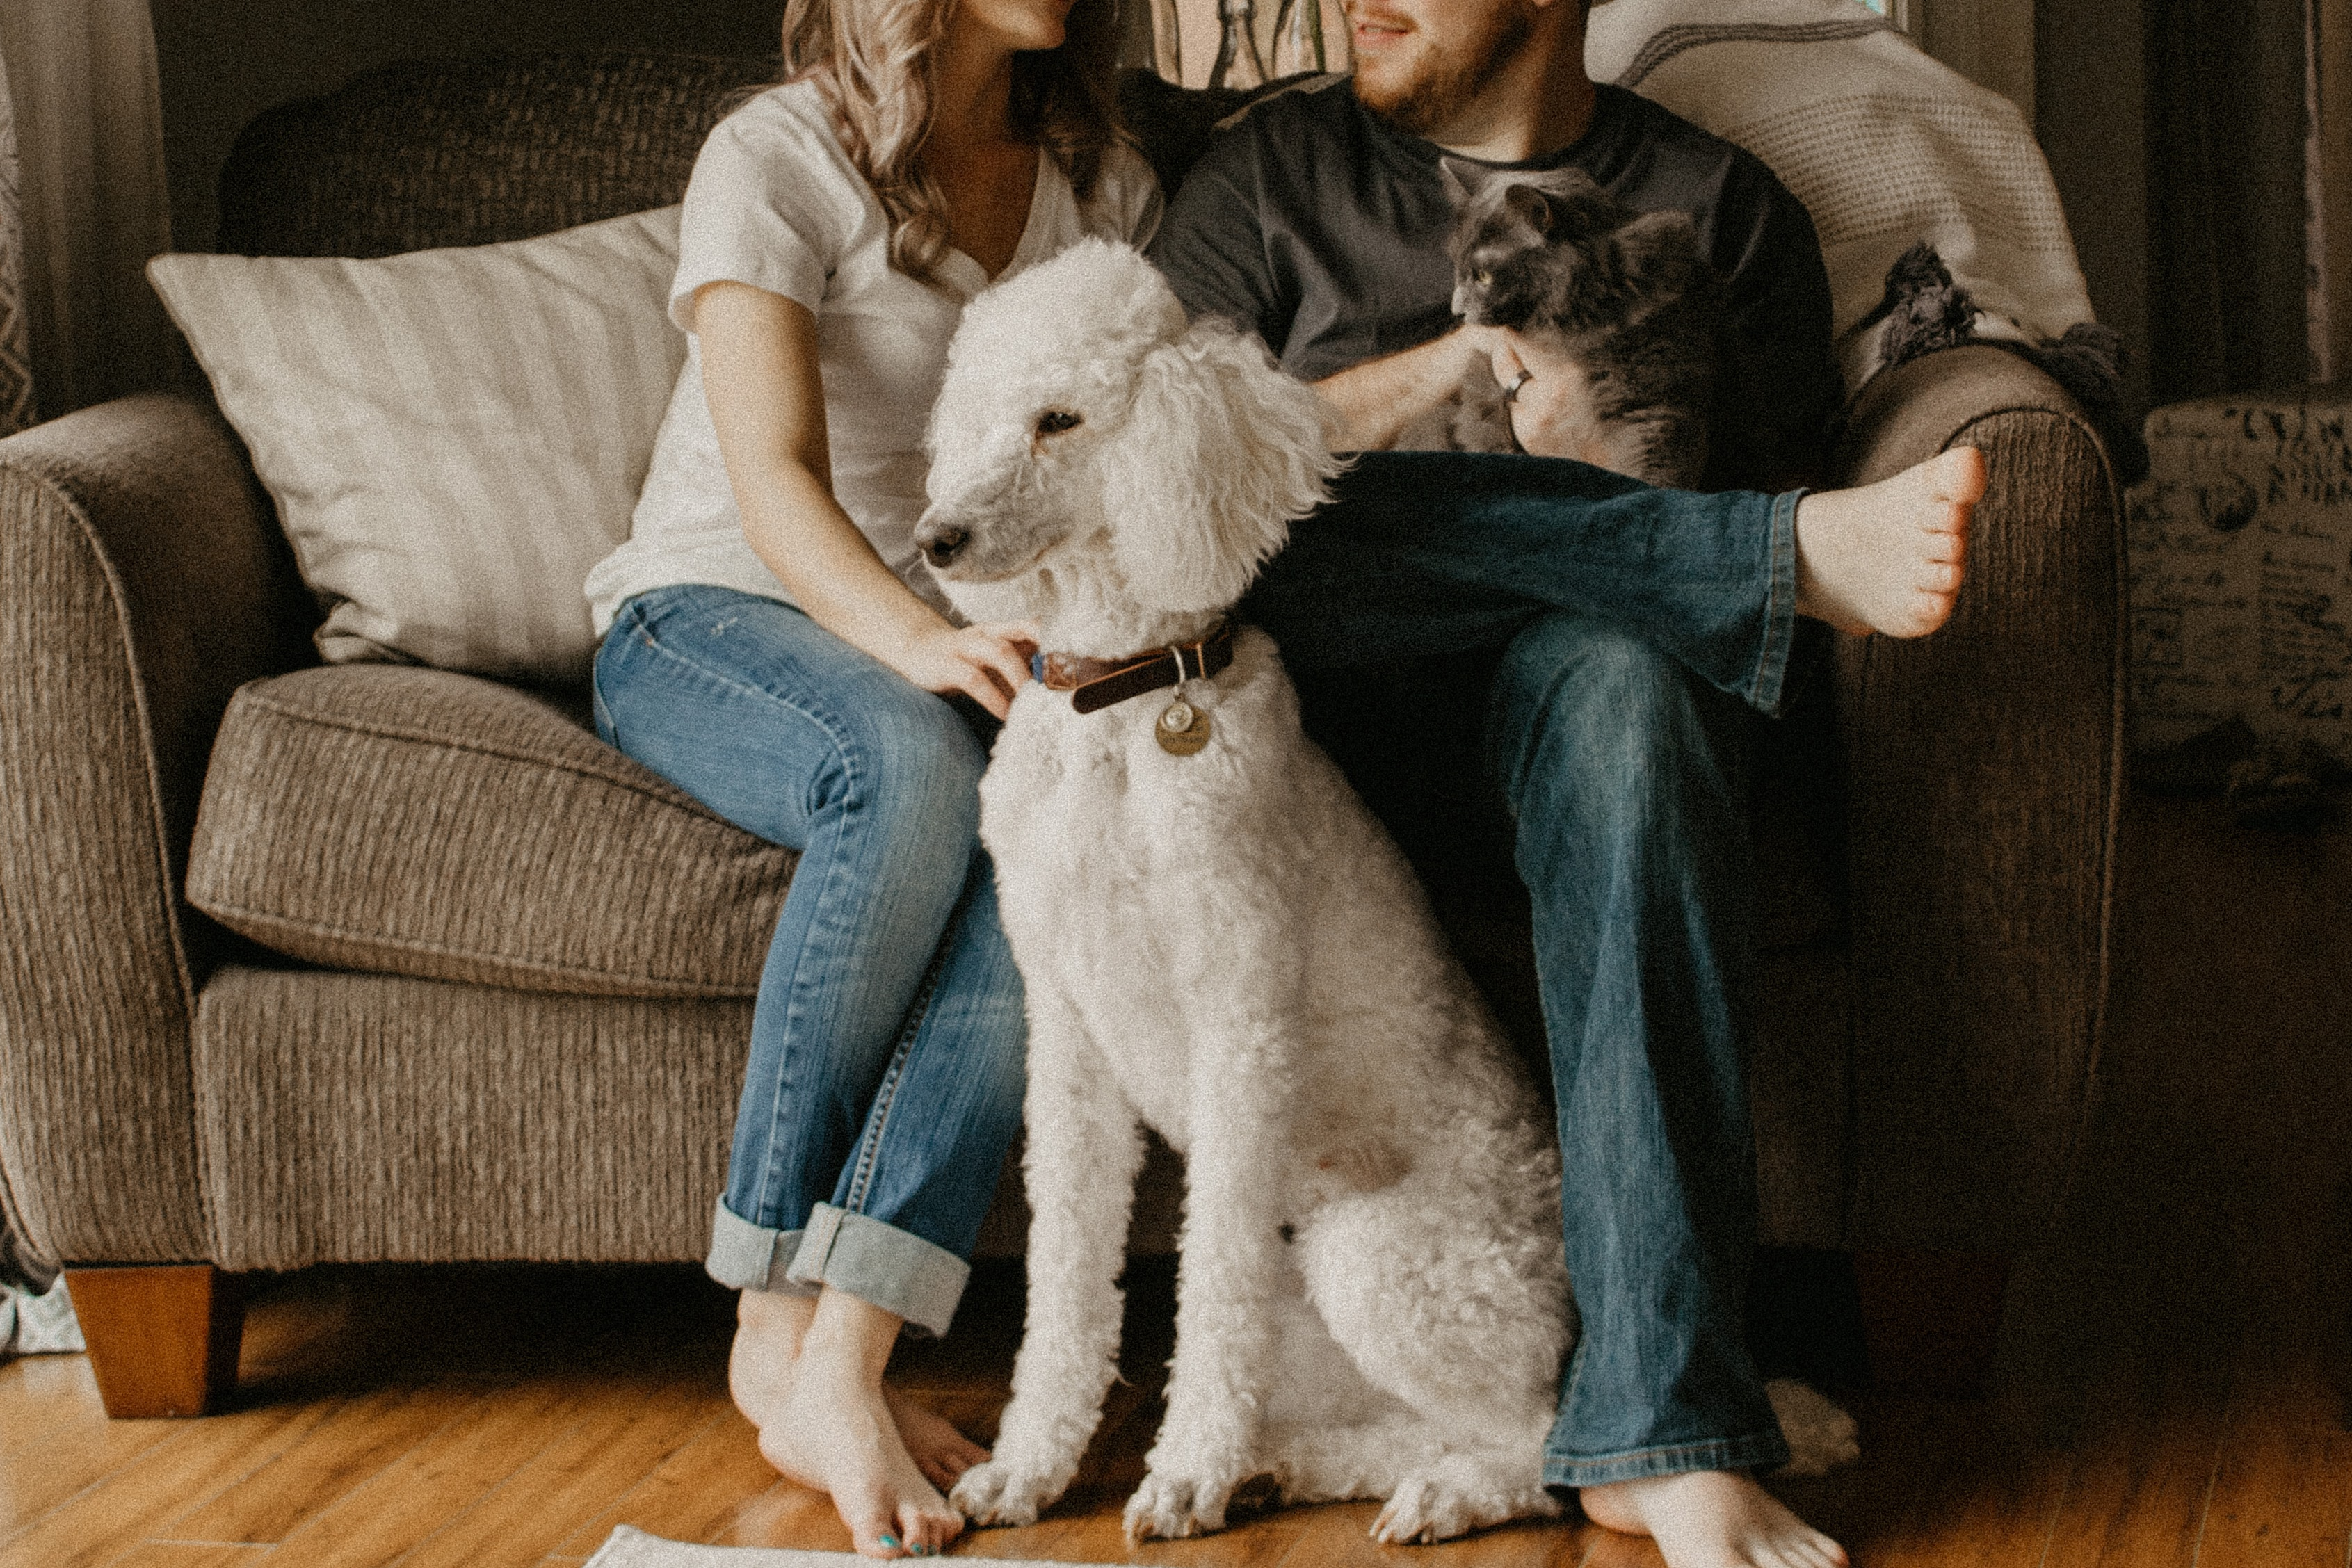 couple sitting on sofa beside dog inside room